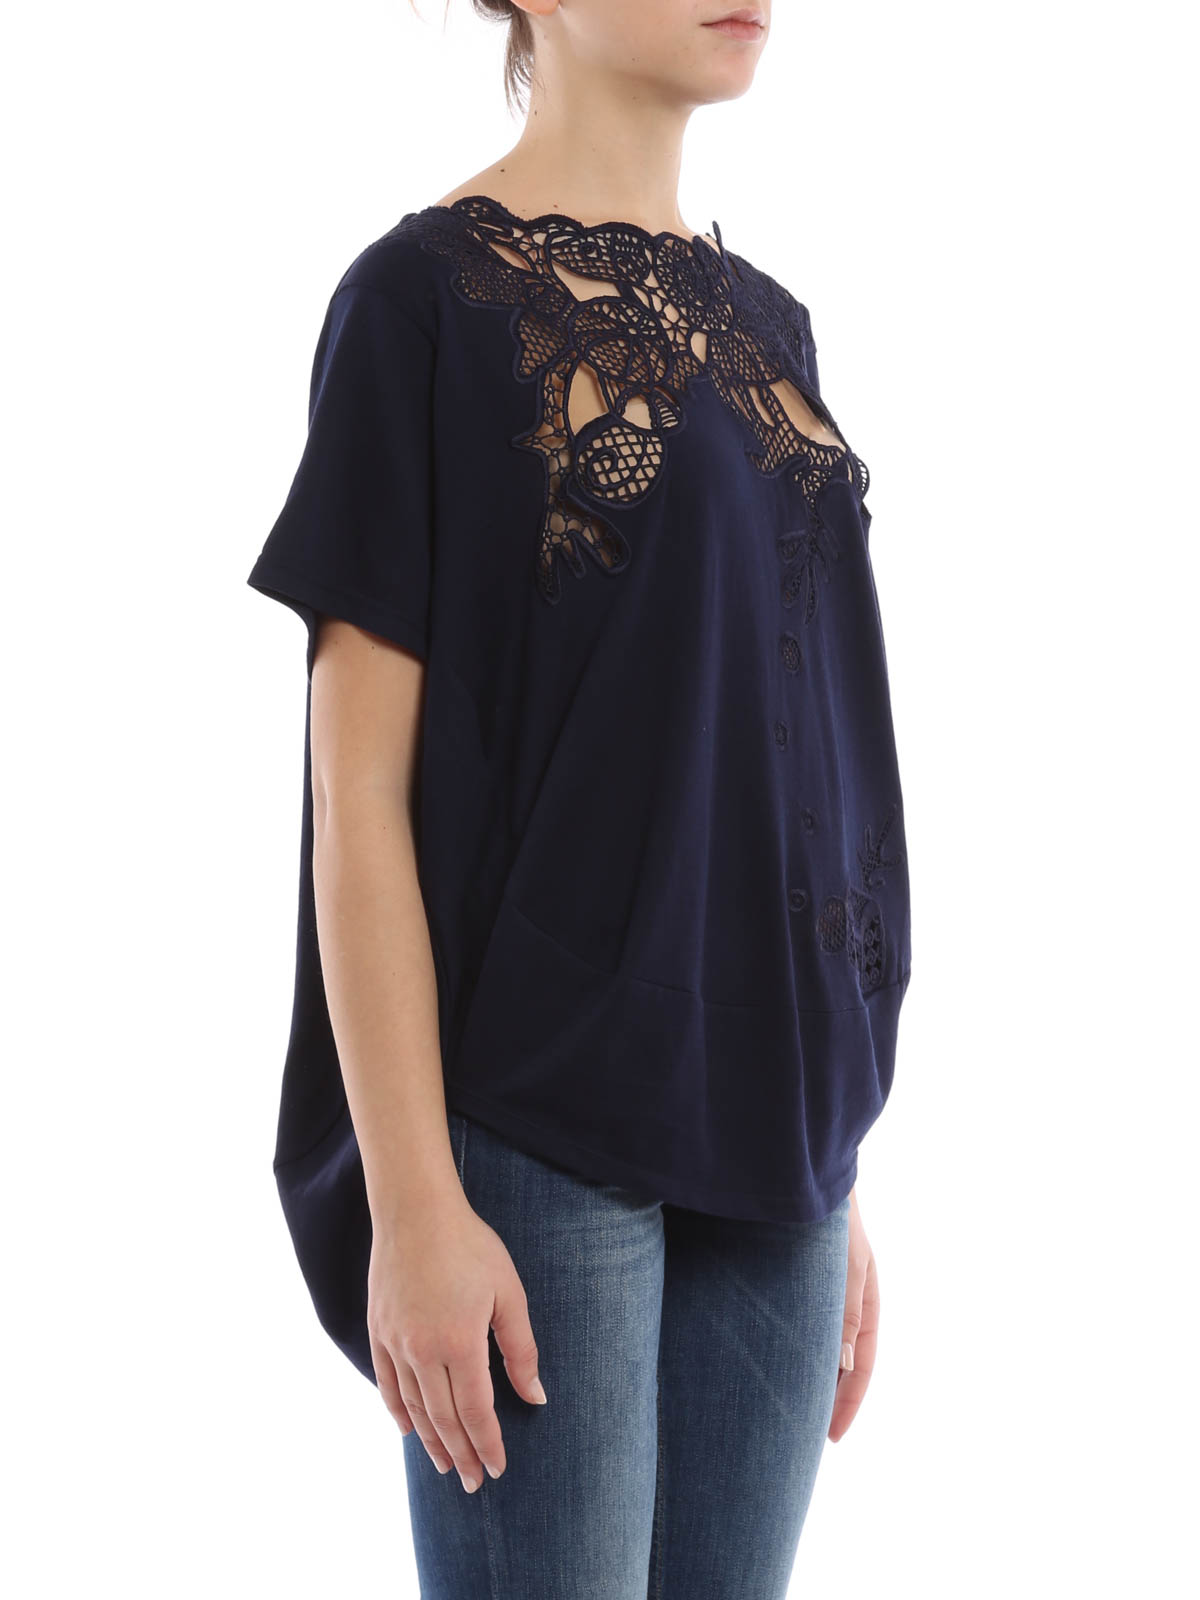 Embroidered t shirt by tsumori chisato t shirts shop for How to embroider t shirts